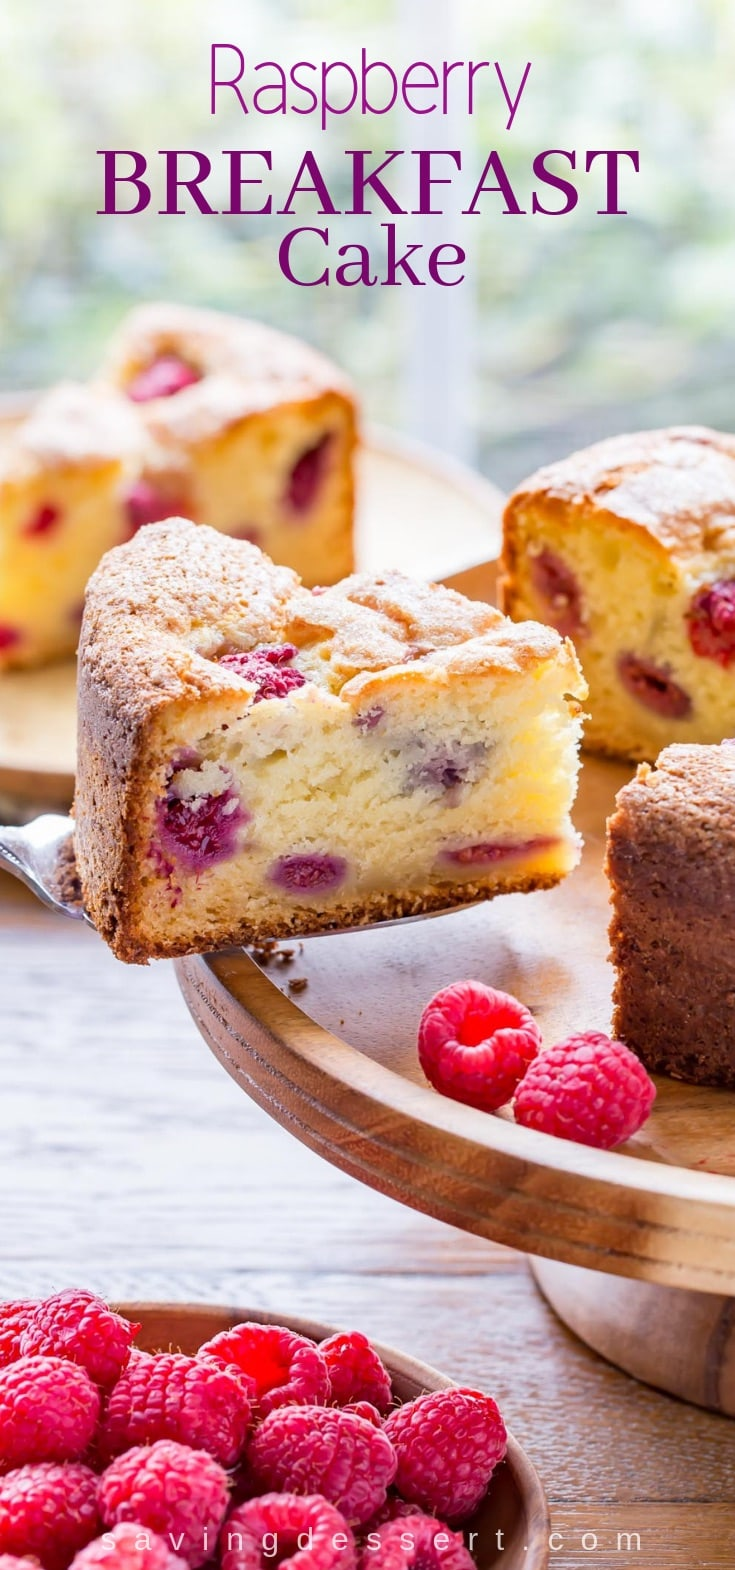 Raspberry Ricotta Breakfast Cake - A deliciously moist and fluffy, berry-streaked breakfast (coffee) cake perfect for dessert, breakfast, brunch, or afternoon tea. #raspberry #ricotta #breakfast #brunch #breakfastcake #coffeecake #raspberrycake